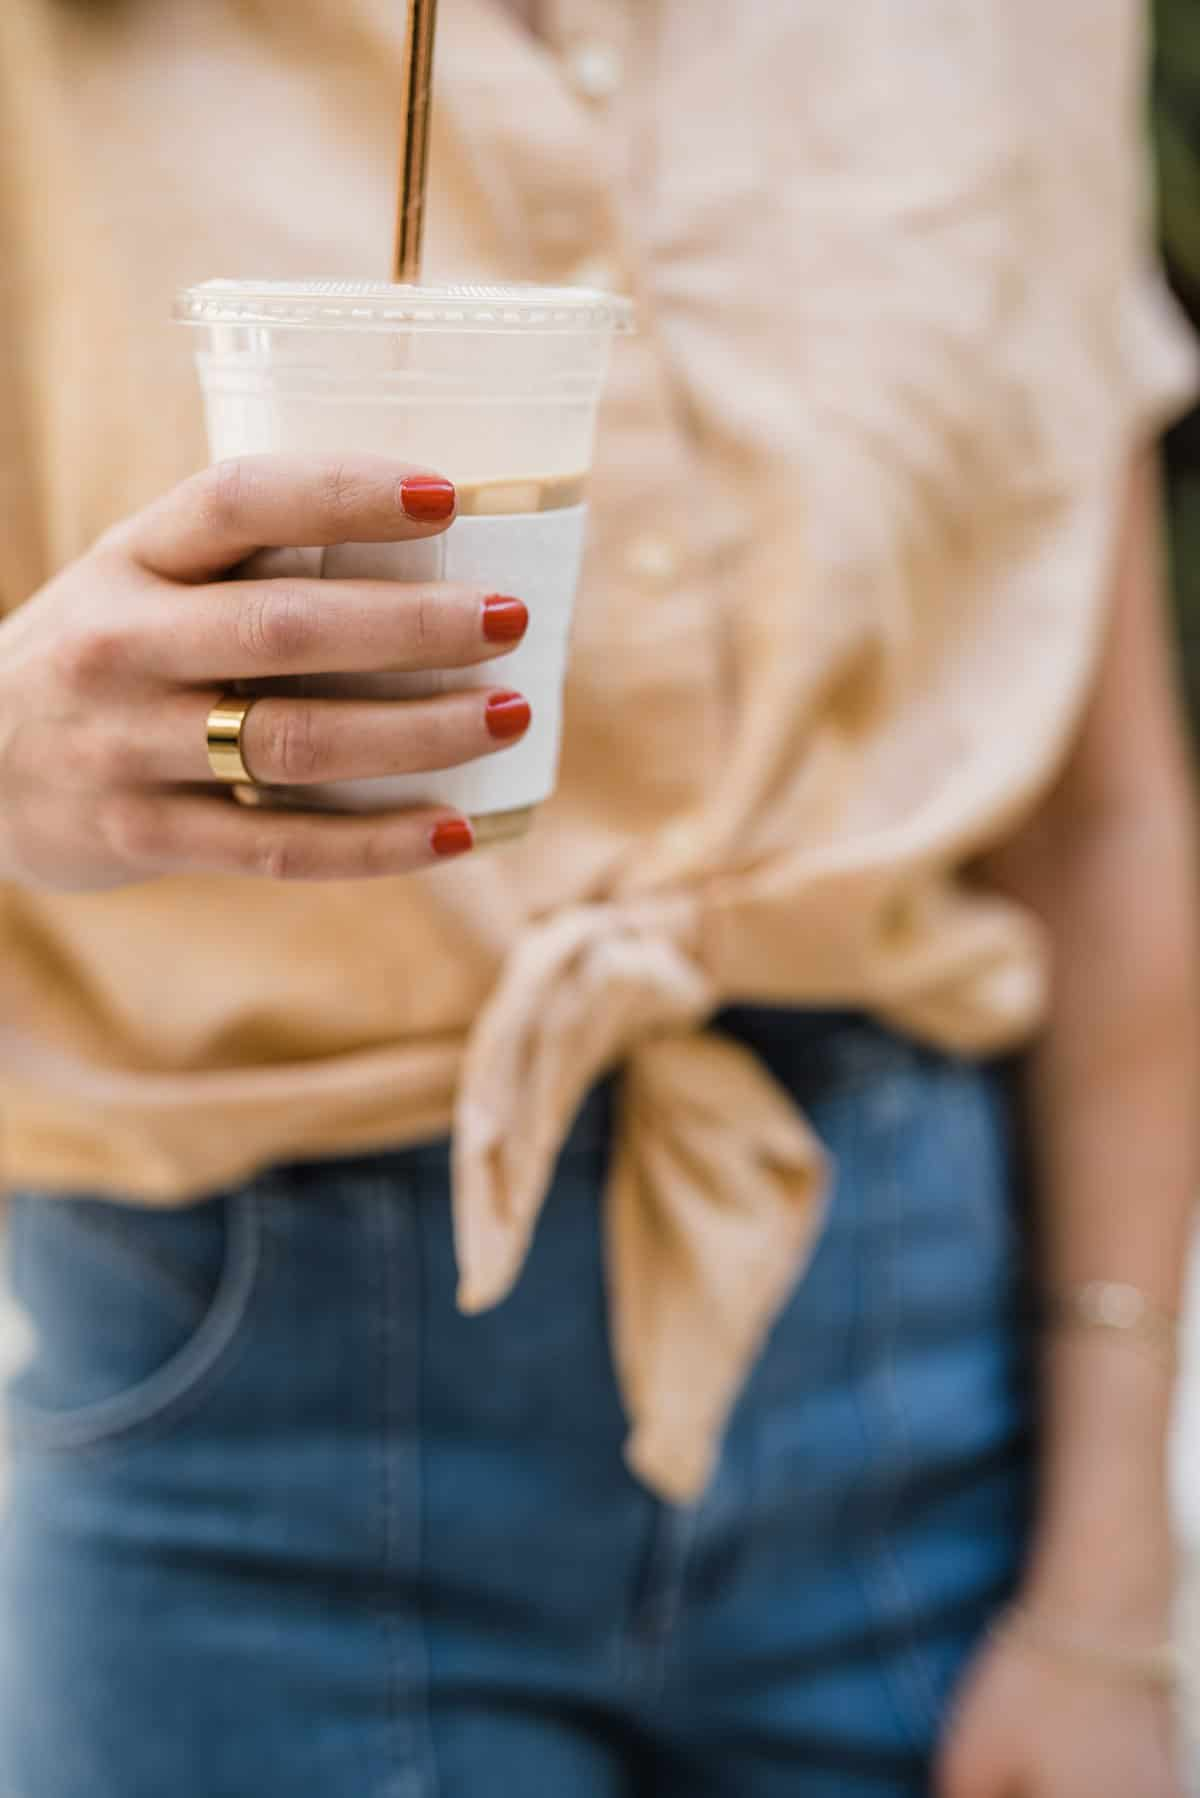 Jessica is holding an iced coffee, red nail polish and gold jewelry